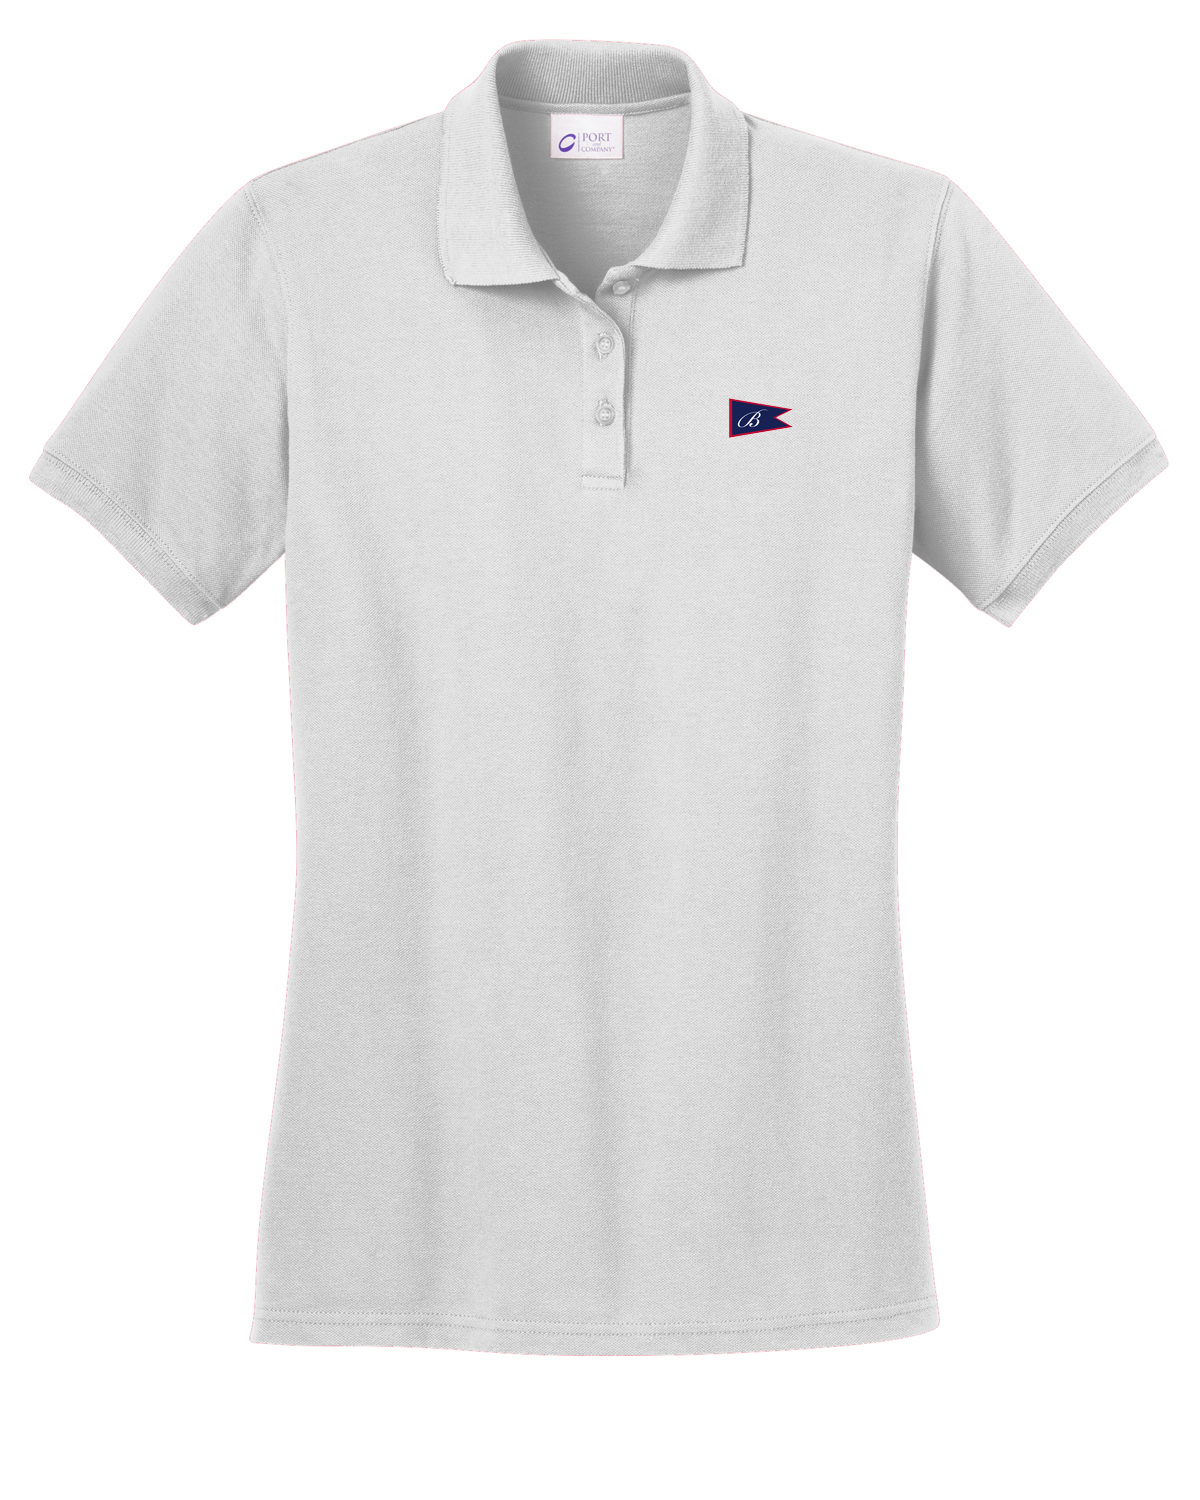 Boathouse of Harbor Springs - Women's Cotton Polo (BHS102)